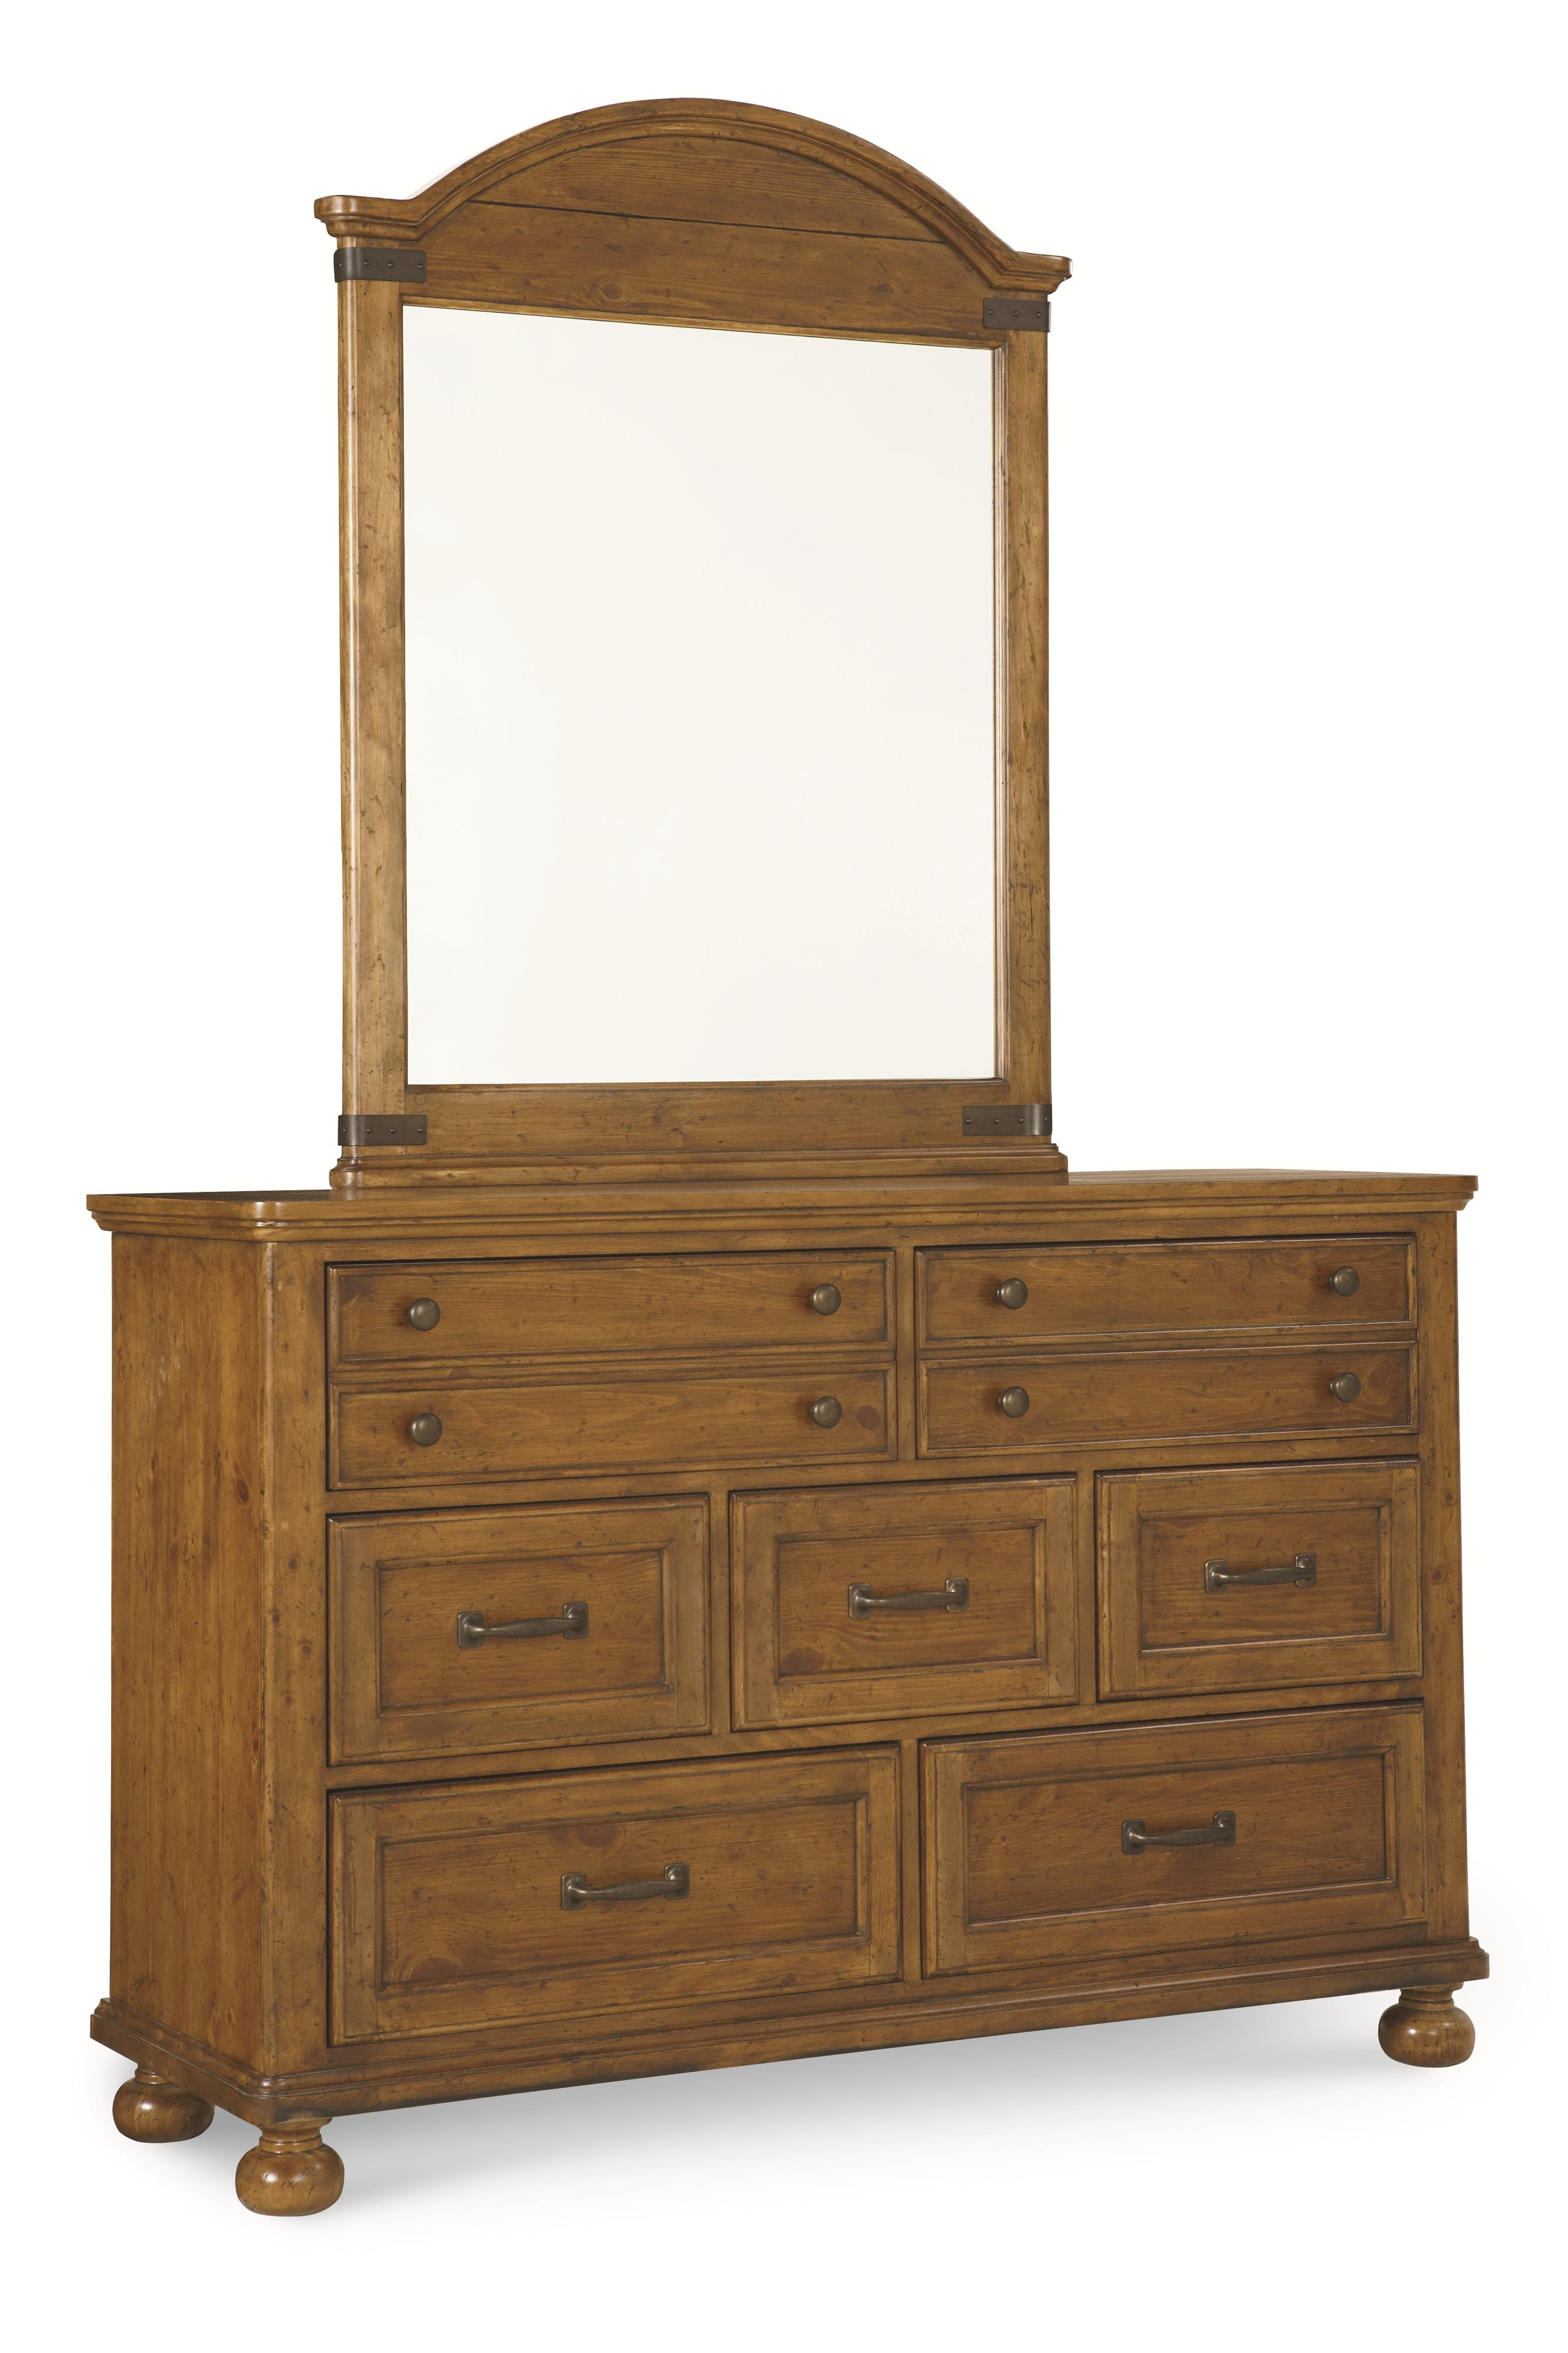 Legacy Classic Kids Bryce Canyon Dresser and Mirror Set - Item Number: 3900-1100+0100